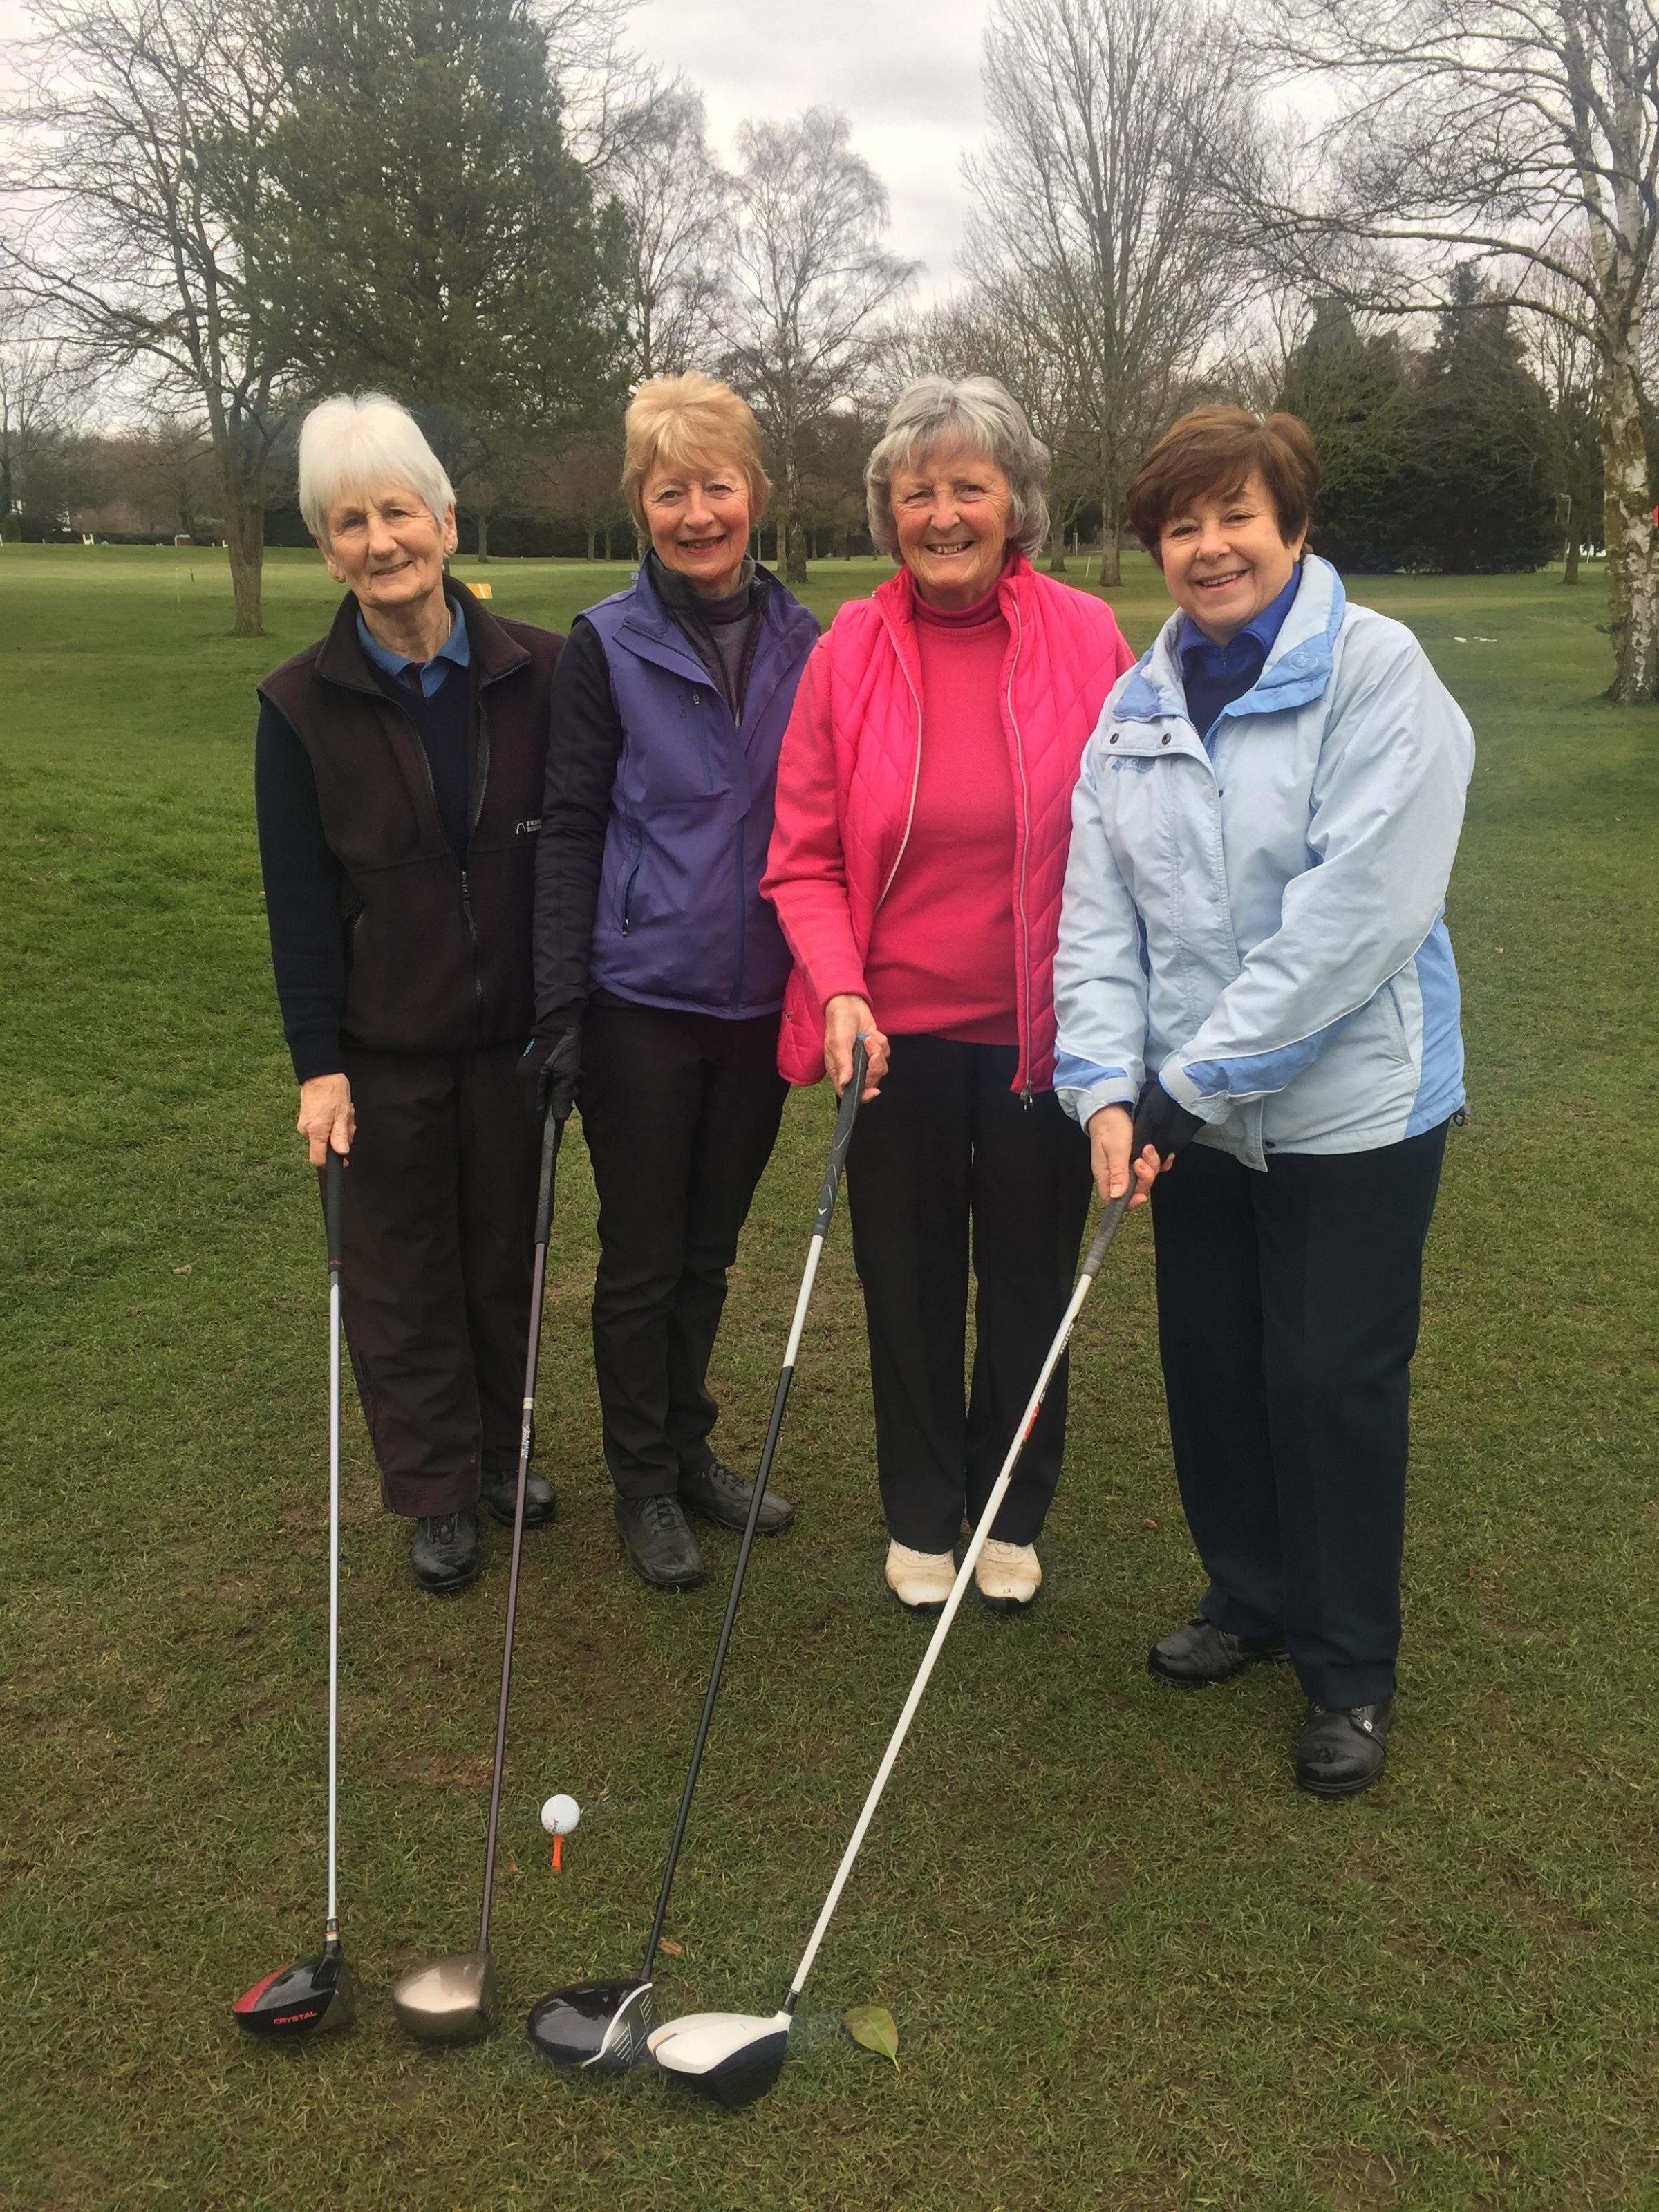 FEARSOME FOURSOME: Evesham Golf Club's female captains Conryn Abbott, Eunice Allen, Patsy Brumage and Angela Budden.